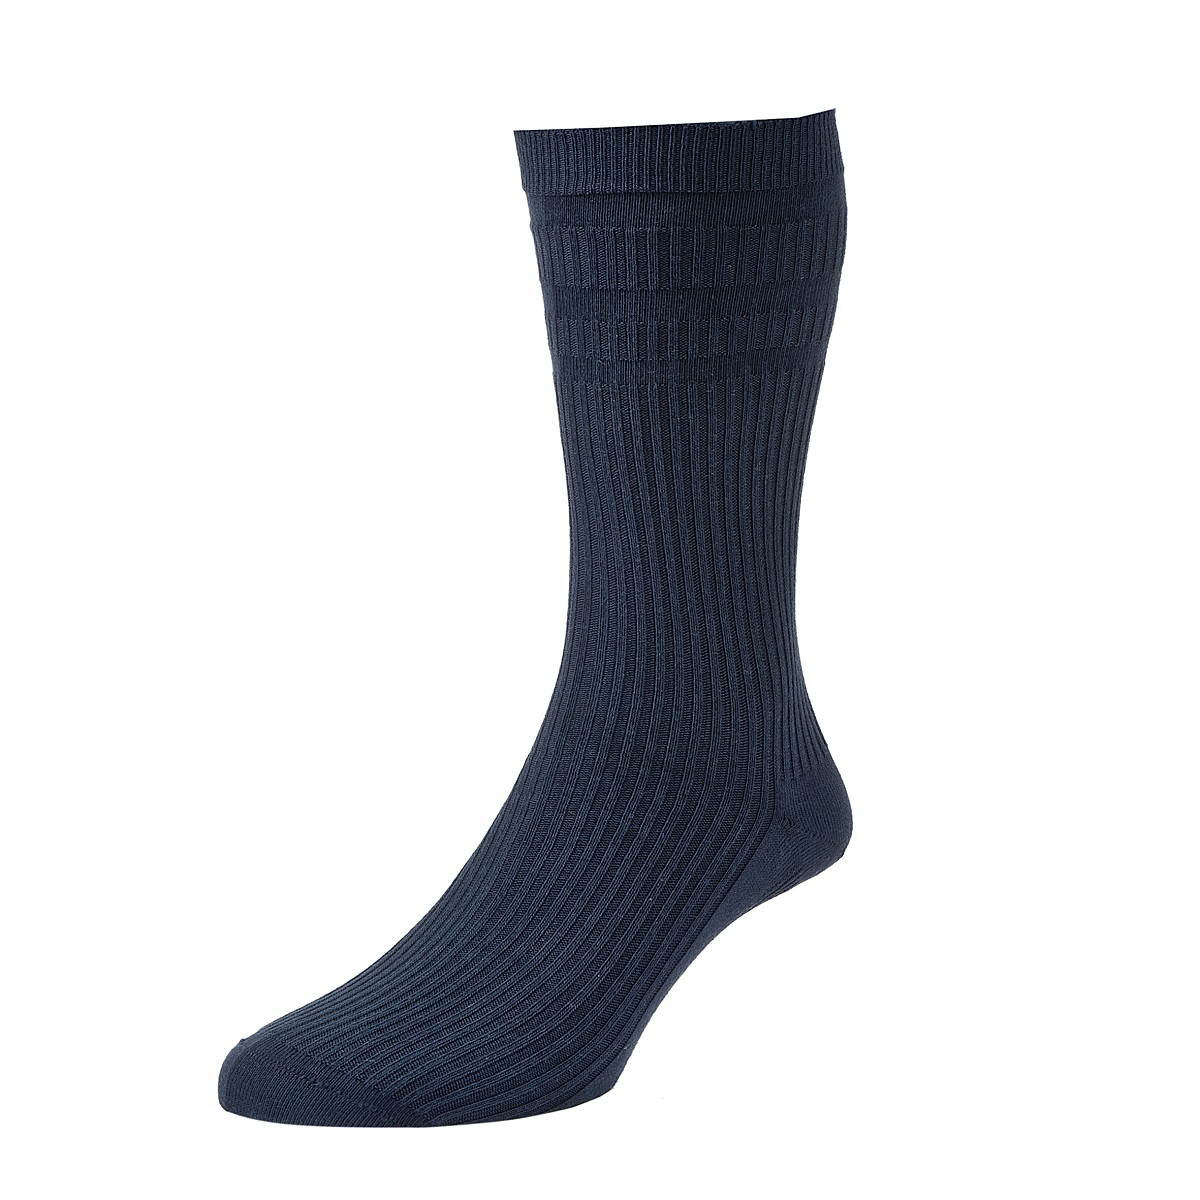 HJ Hall Softop Mens Cotton Socks size 11-13  Dark Navy HJ91